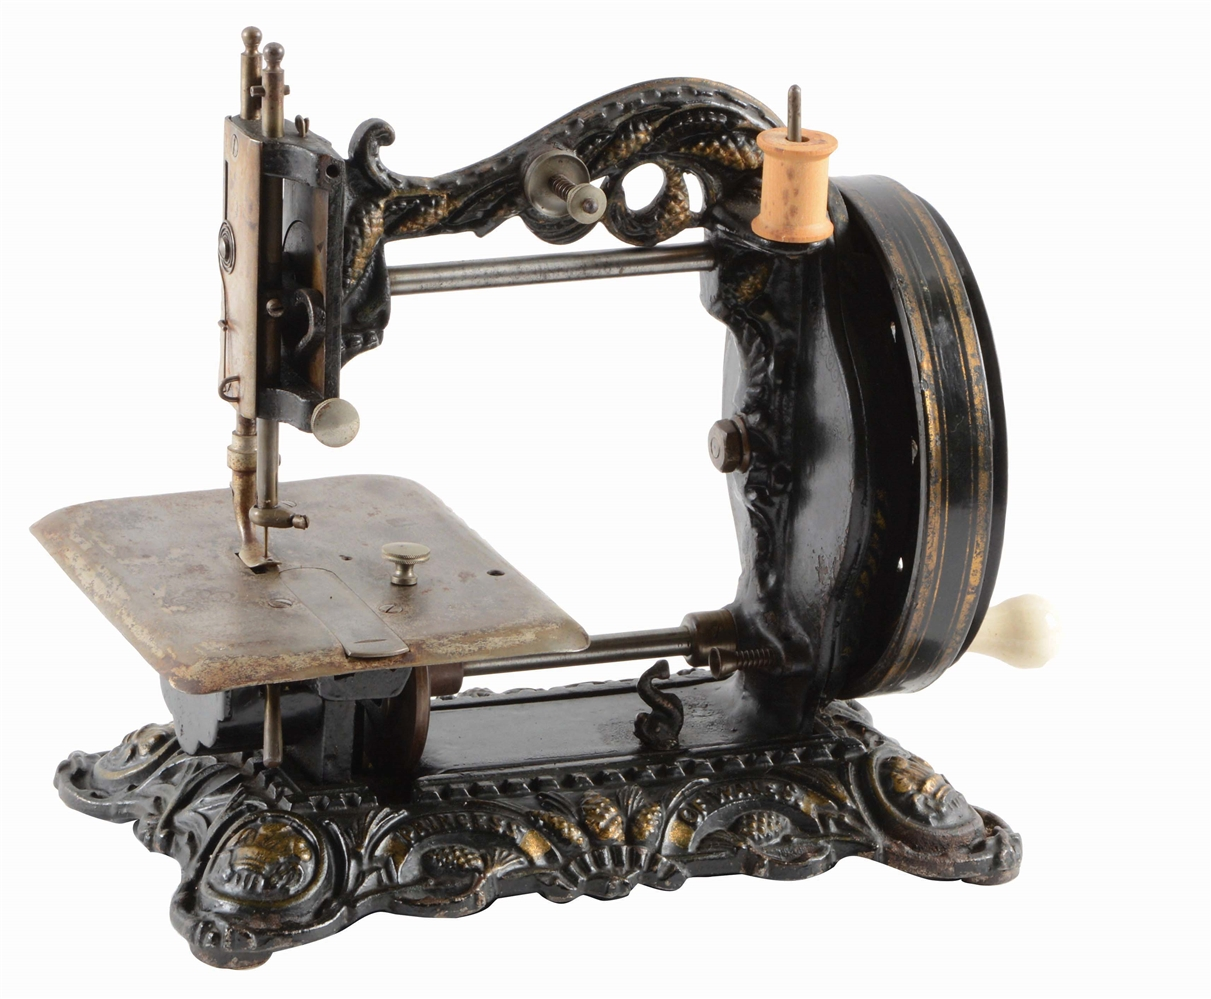 LATE 1890S SEWING MACHINE.